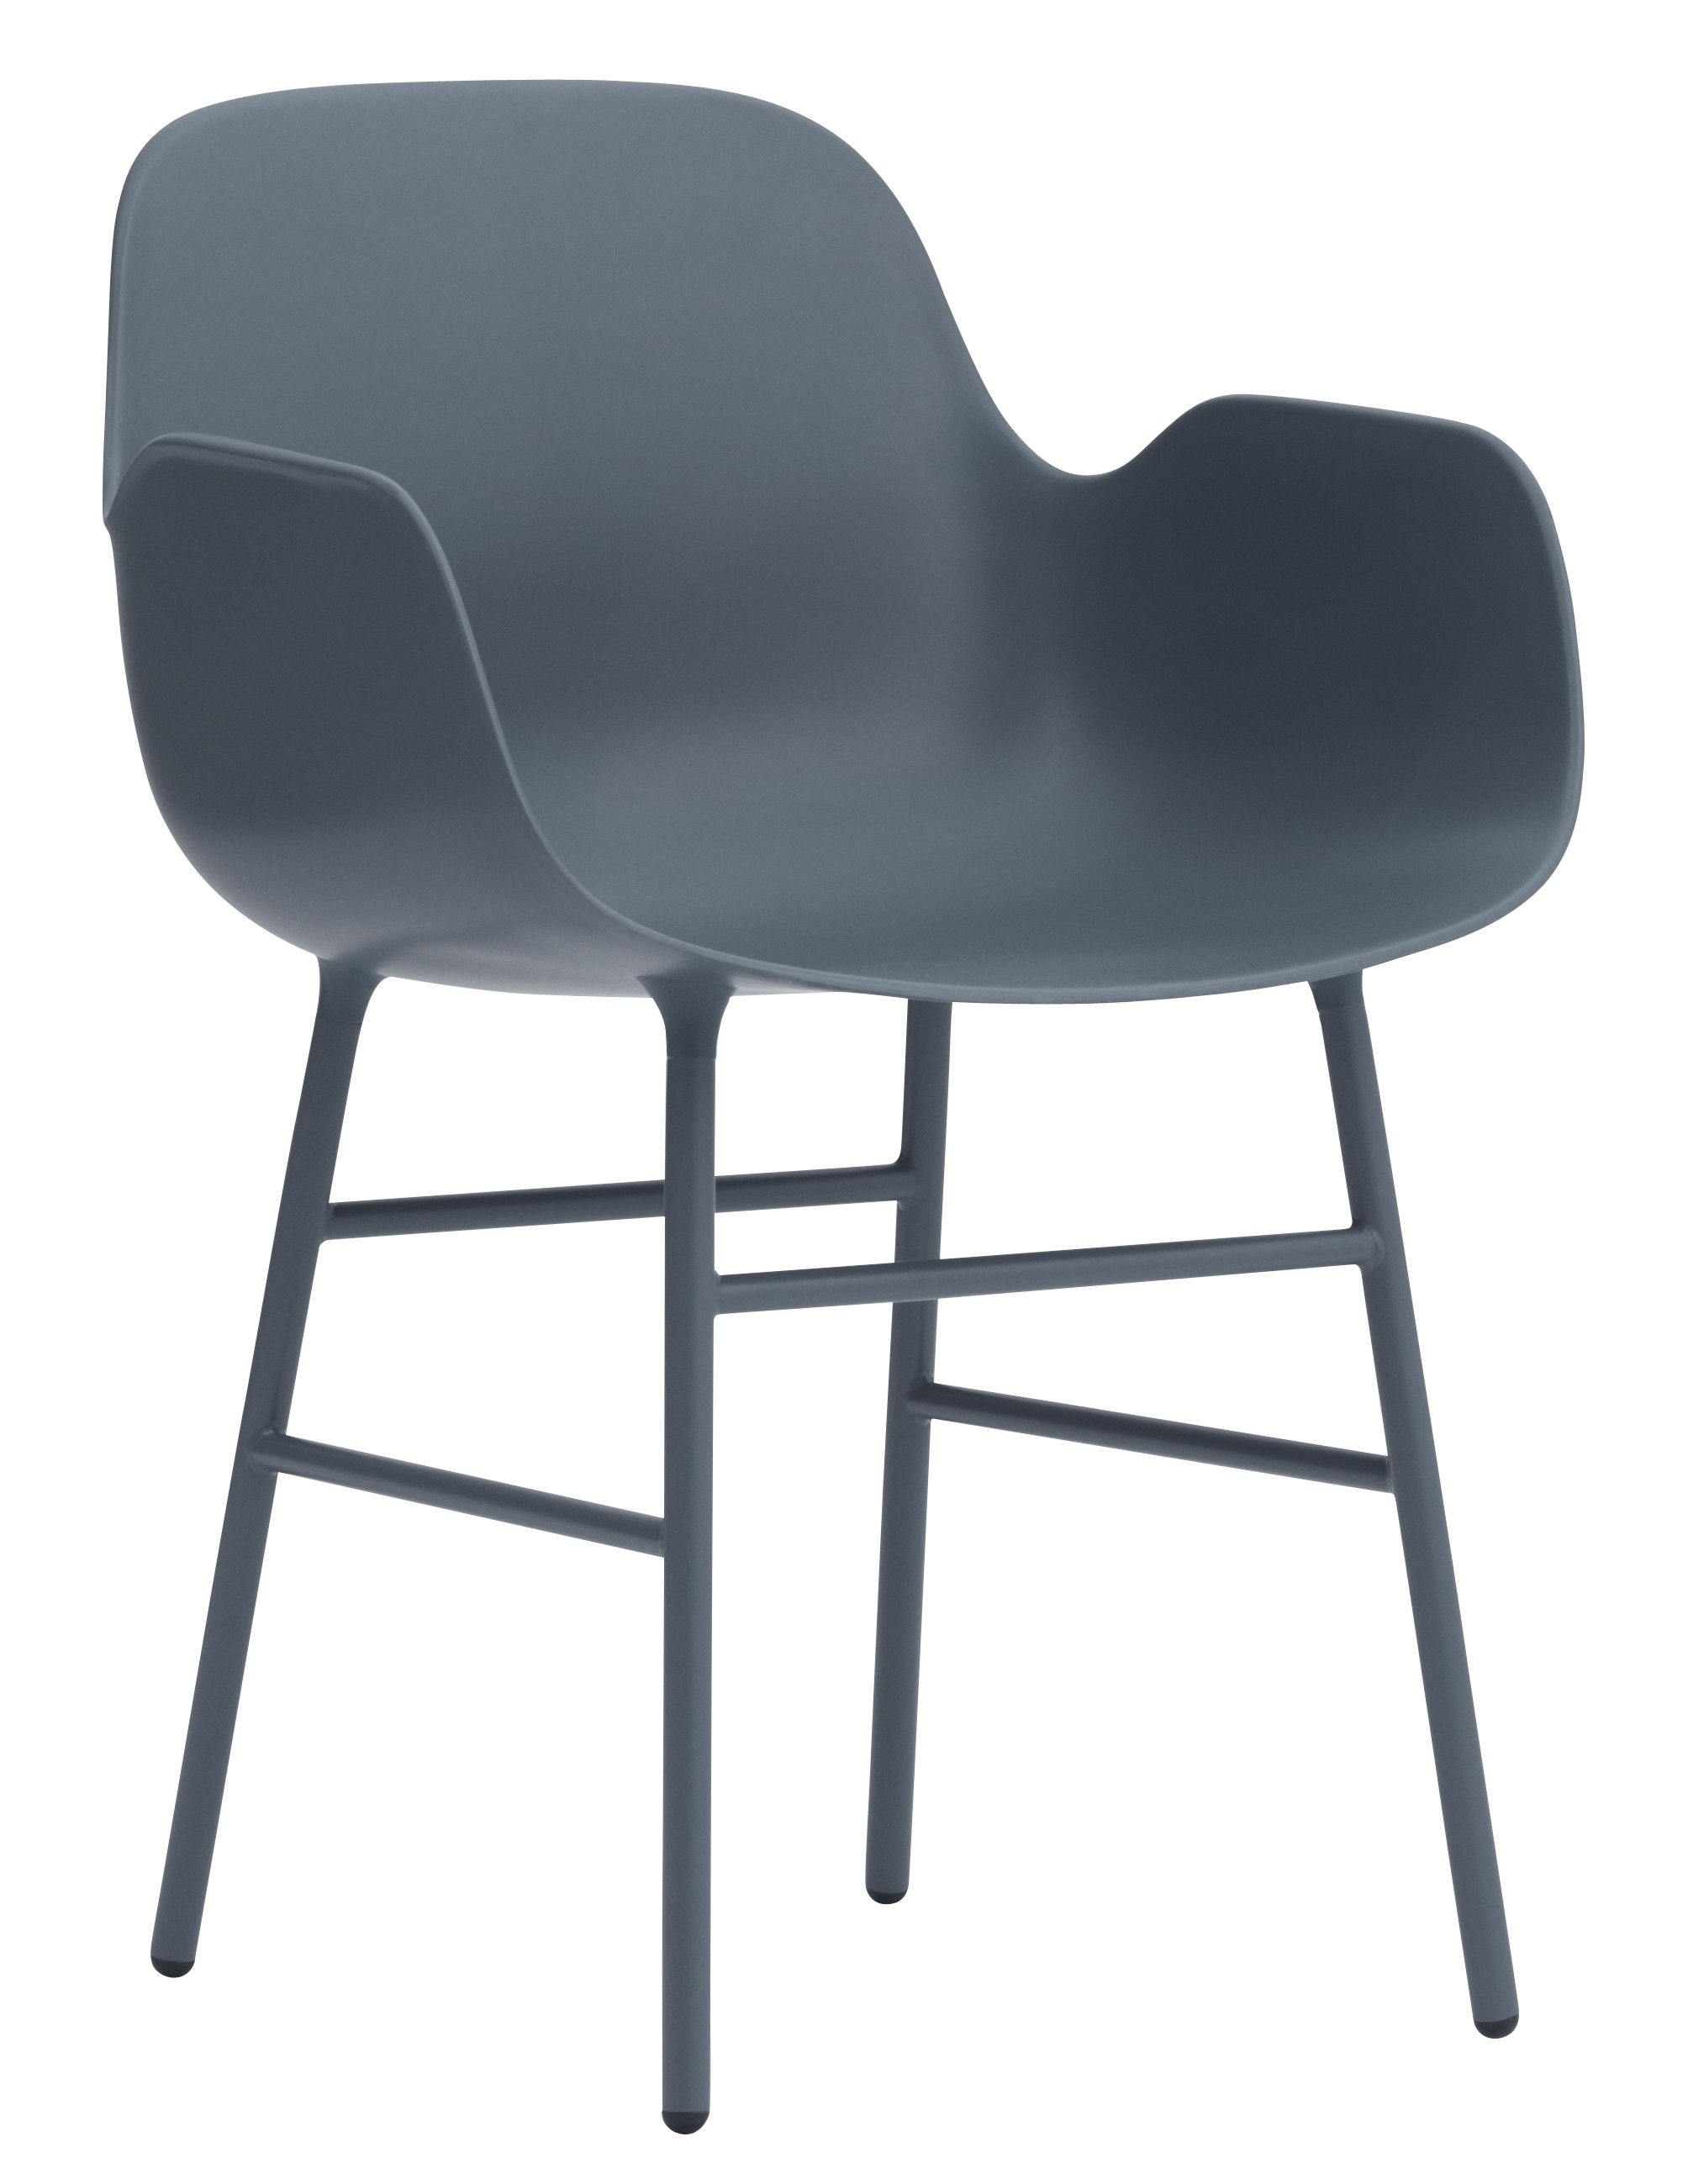 fauteuil form pied m tal bleu normann copenhagen. Black Bedroom Furniture Sets. Home Design Ideas